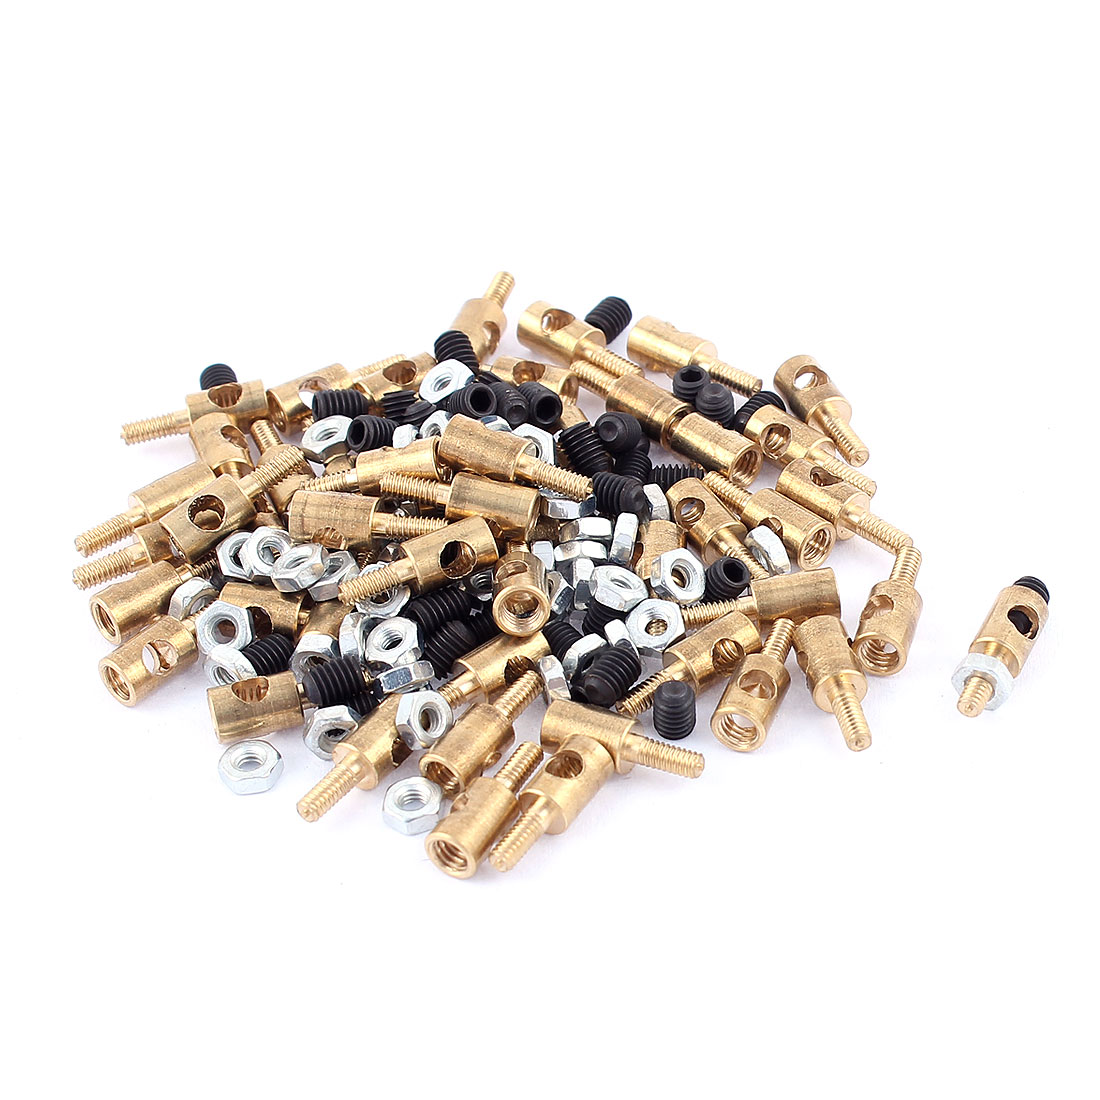 50pcs 4mm x 2.5mm Pushrod Linkage Stopper Metal for RC Model w Nuts